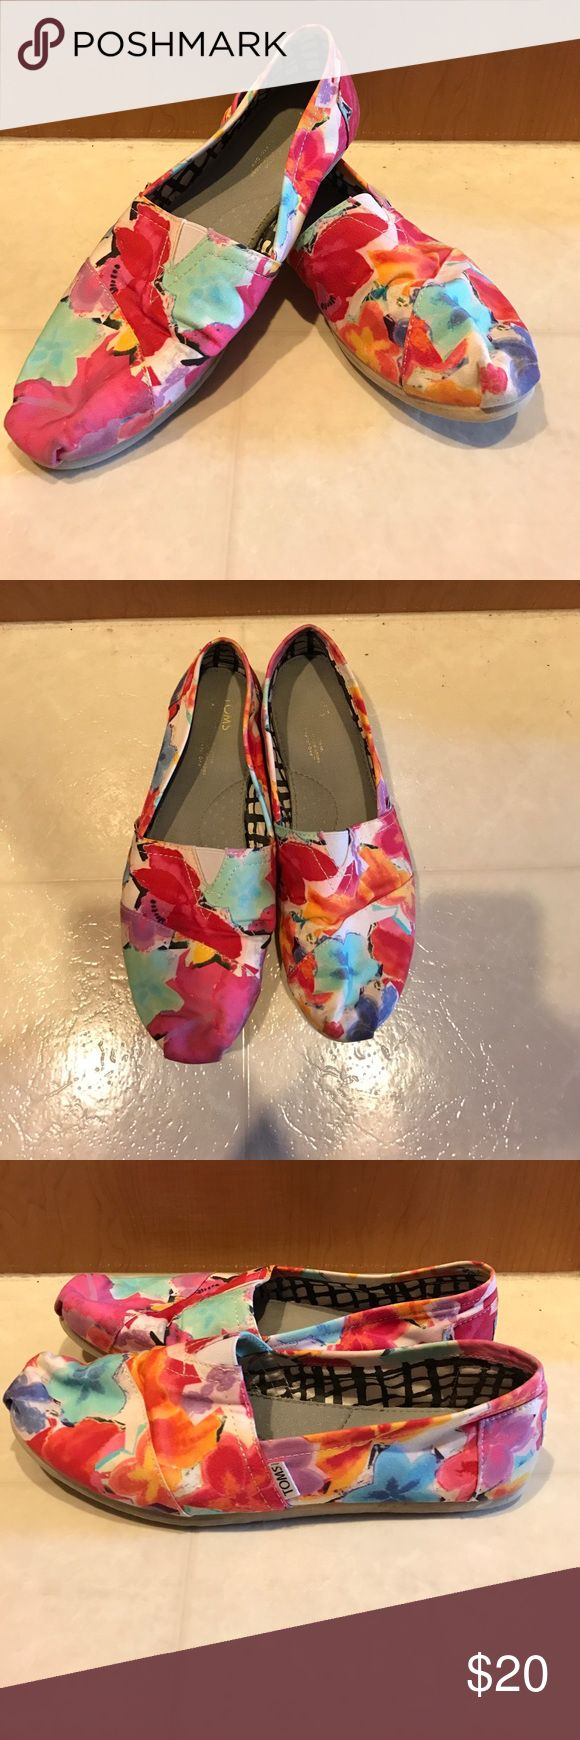 Floral TOMS Bright colorful floral toms! Fun summer shoes. Used. TOMS Shoes Flats & Loafers